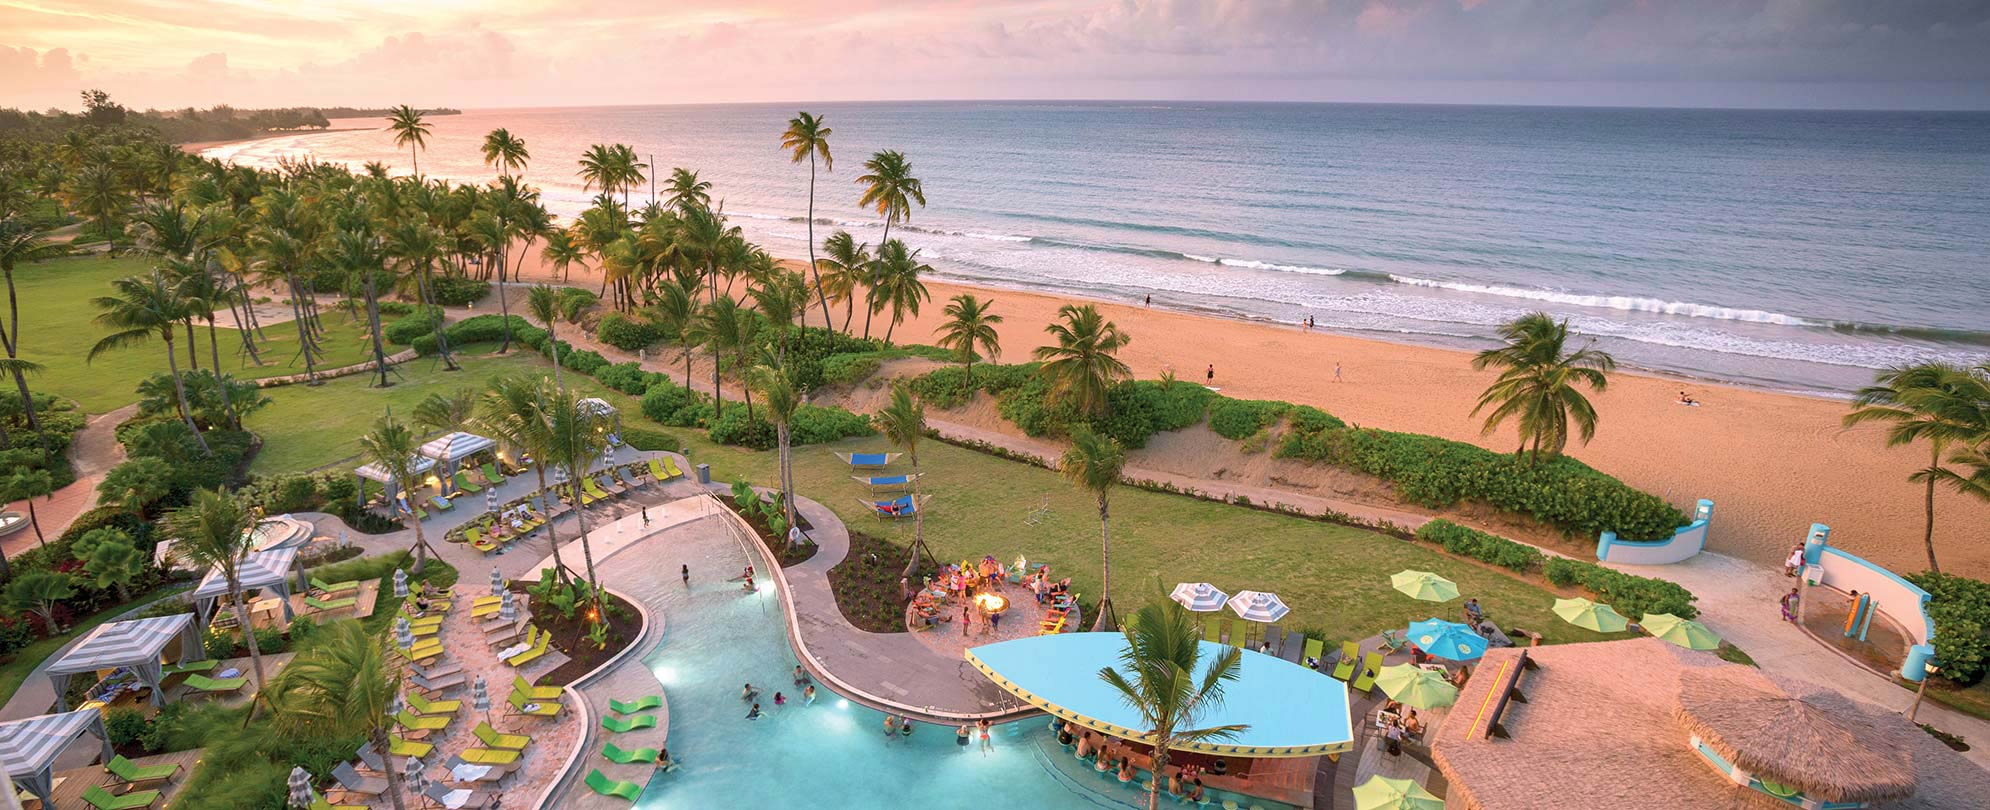 Birds-eye-view of the oceanfront pool at Margaritaville Vacation Club by Wyndham - Rio Mar timeshare resort in Puerto Rico.